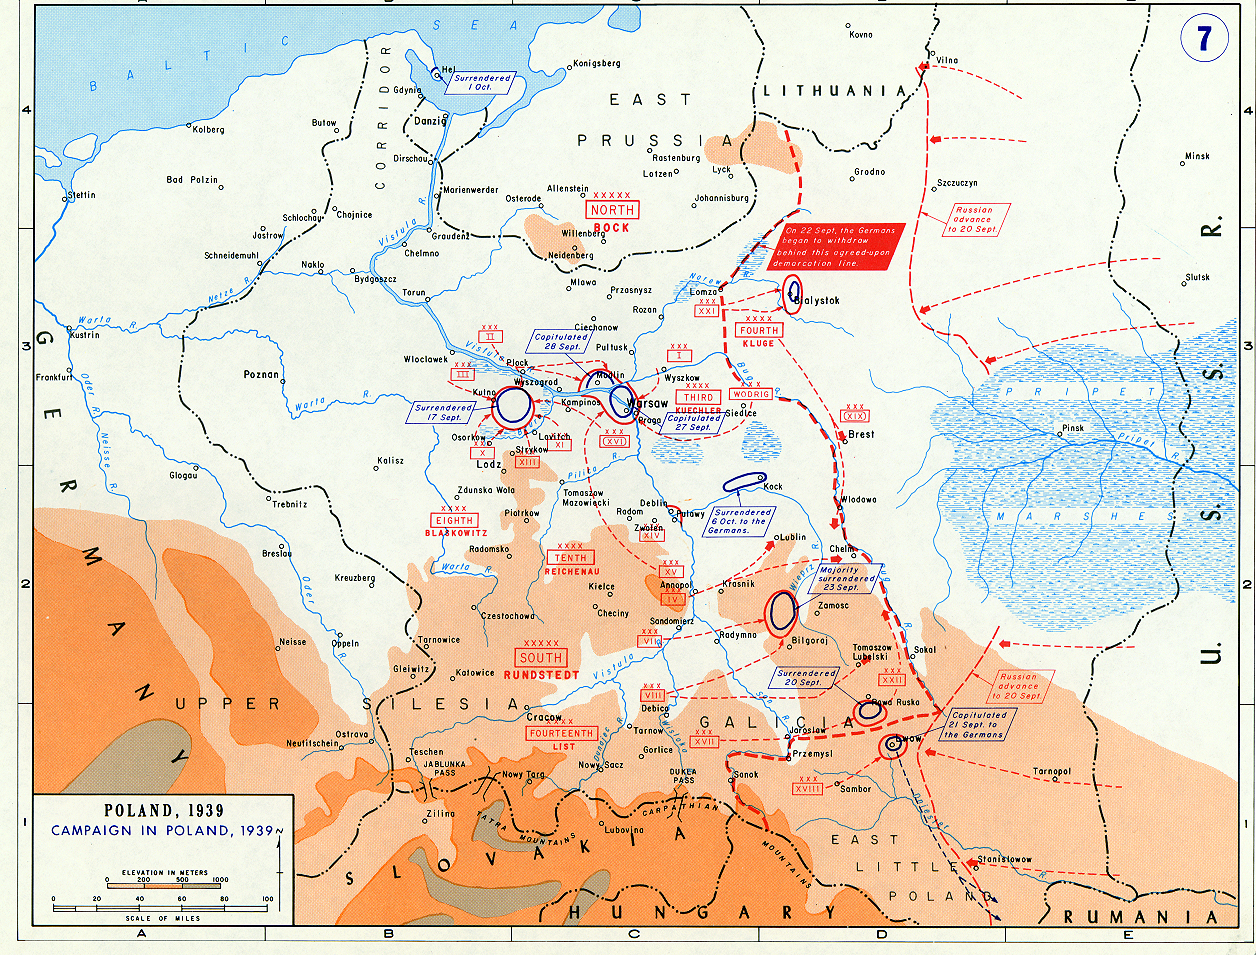 Invasion of Poland Maps – September 1939 | Historical ...